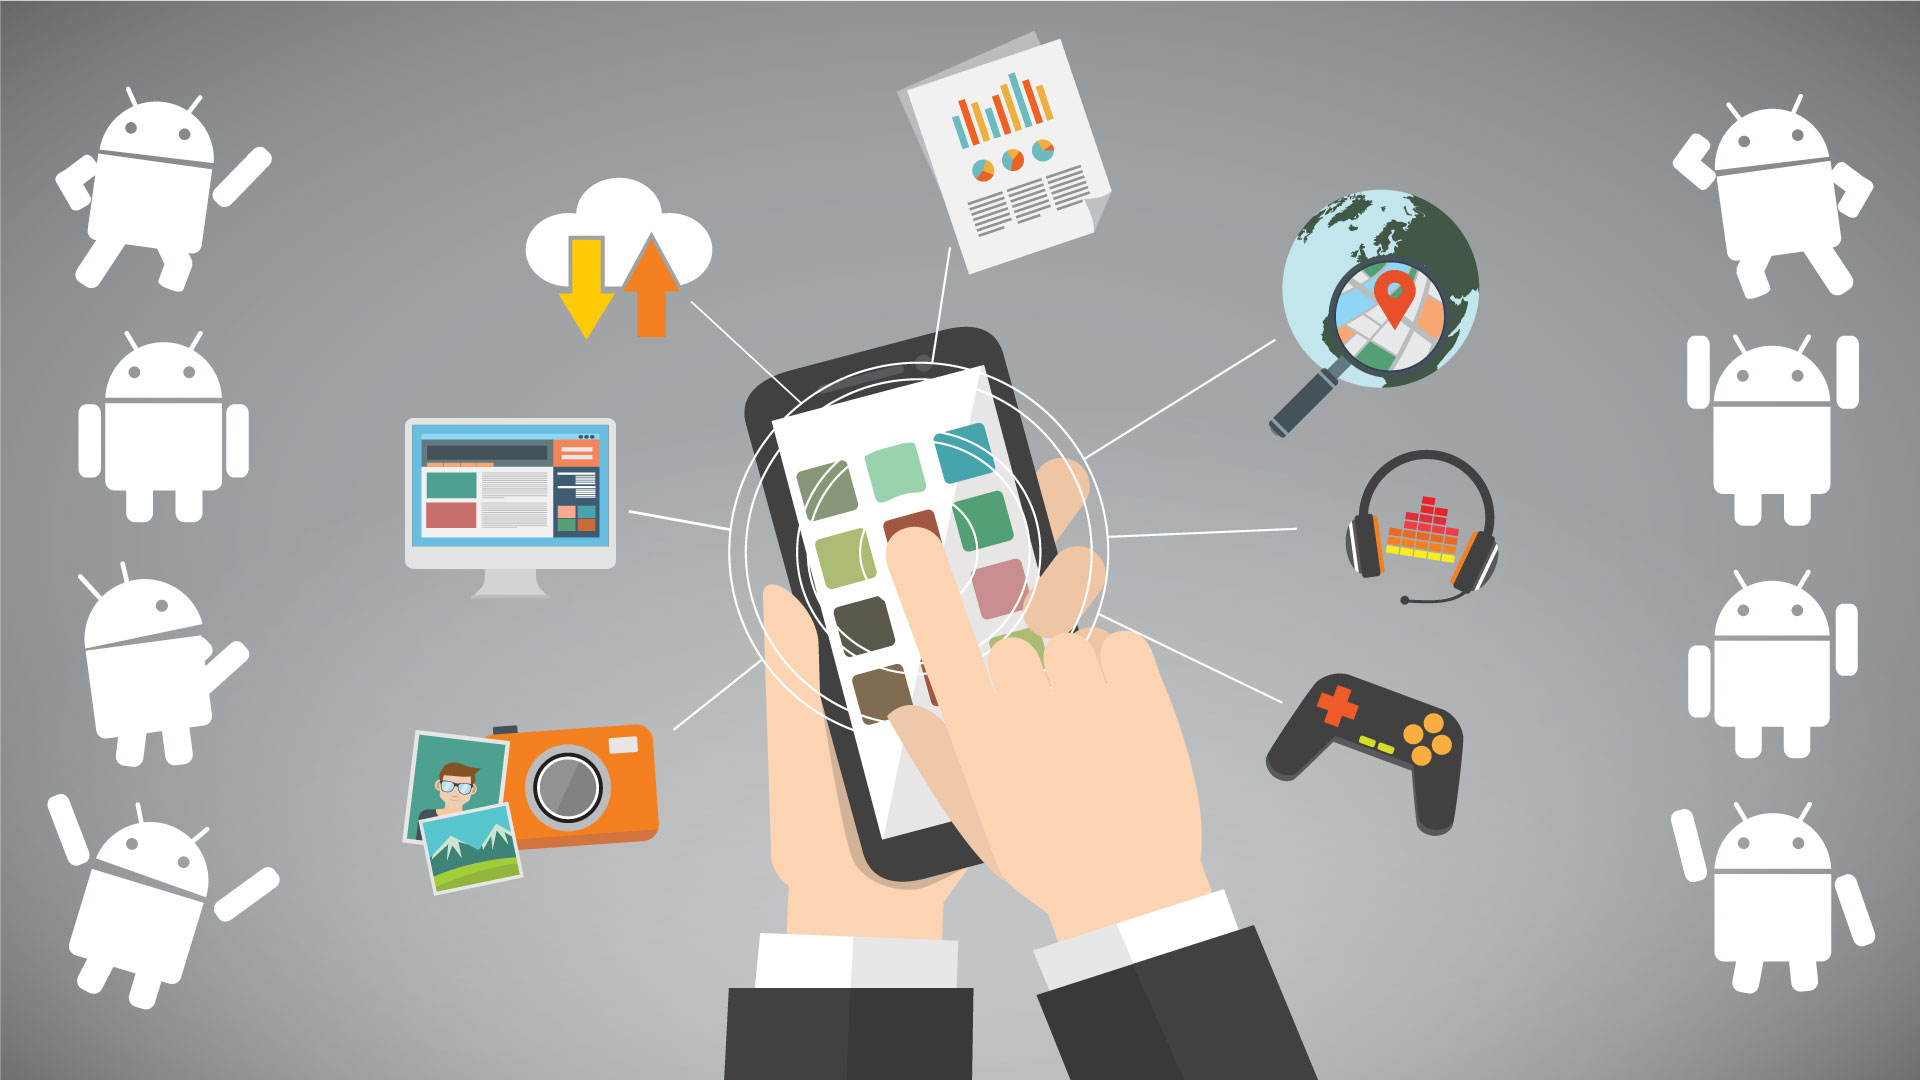 The mobile app development company that provides what your business needs